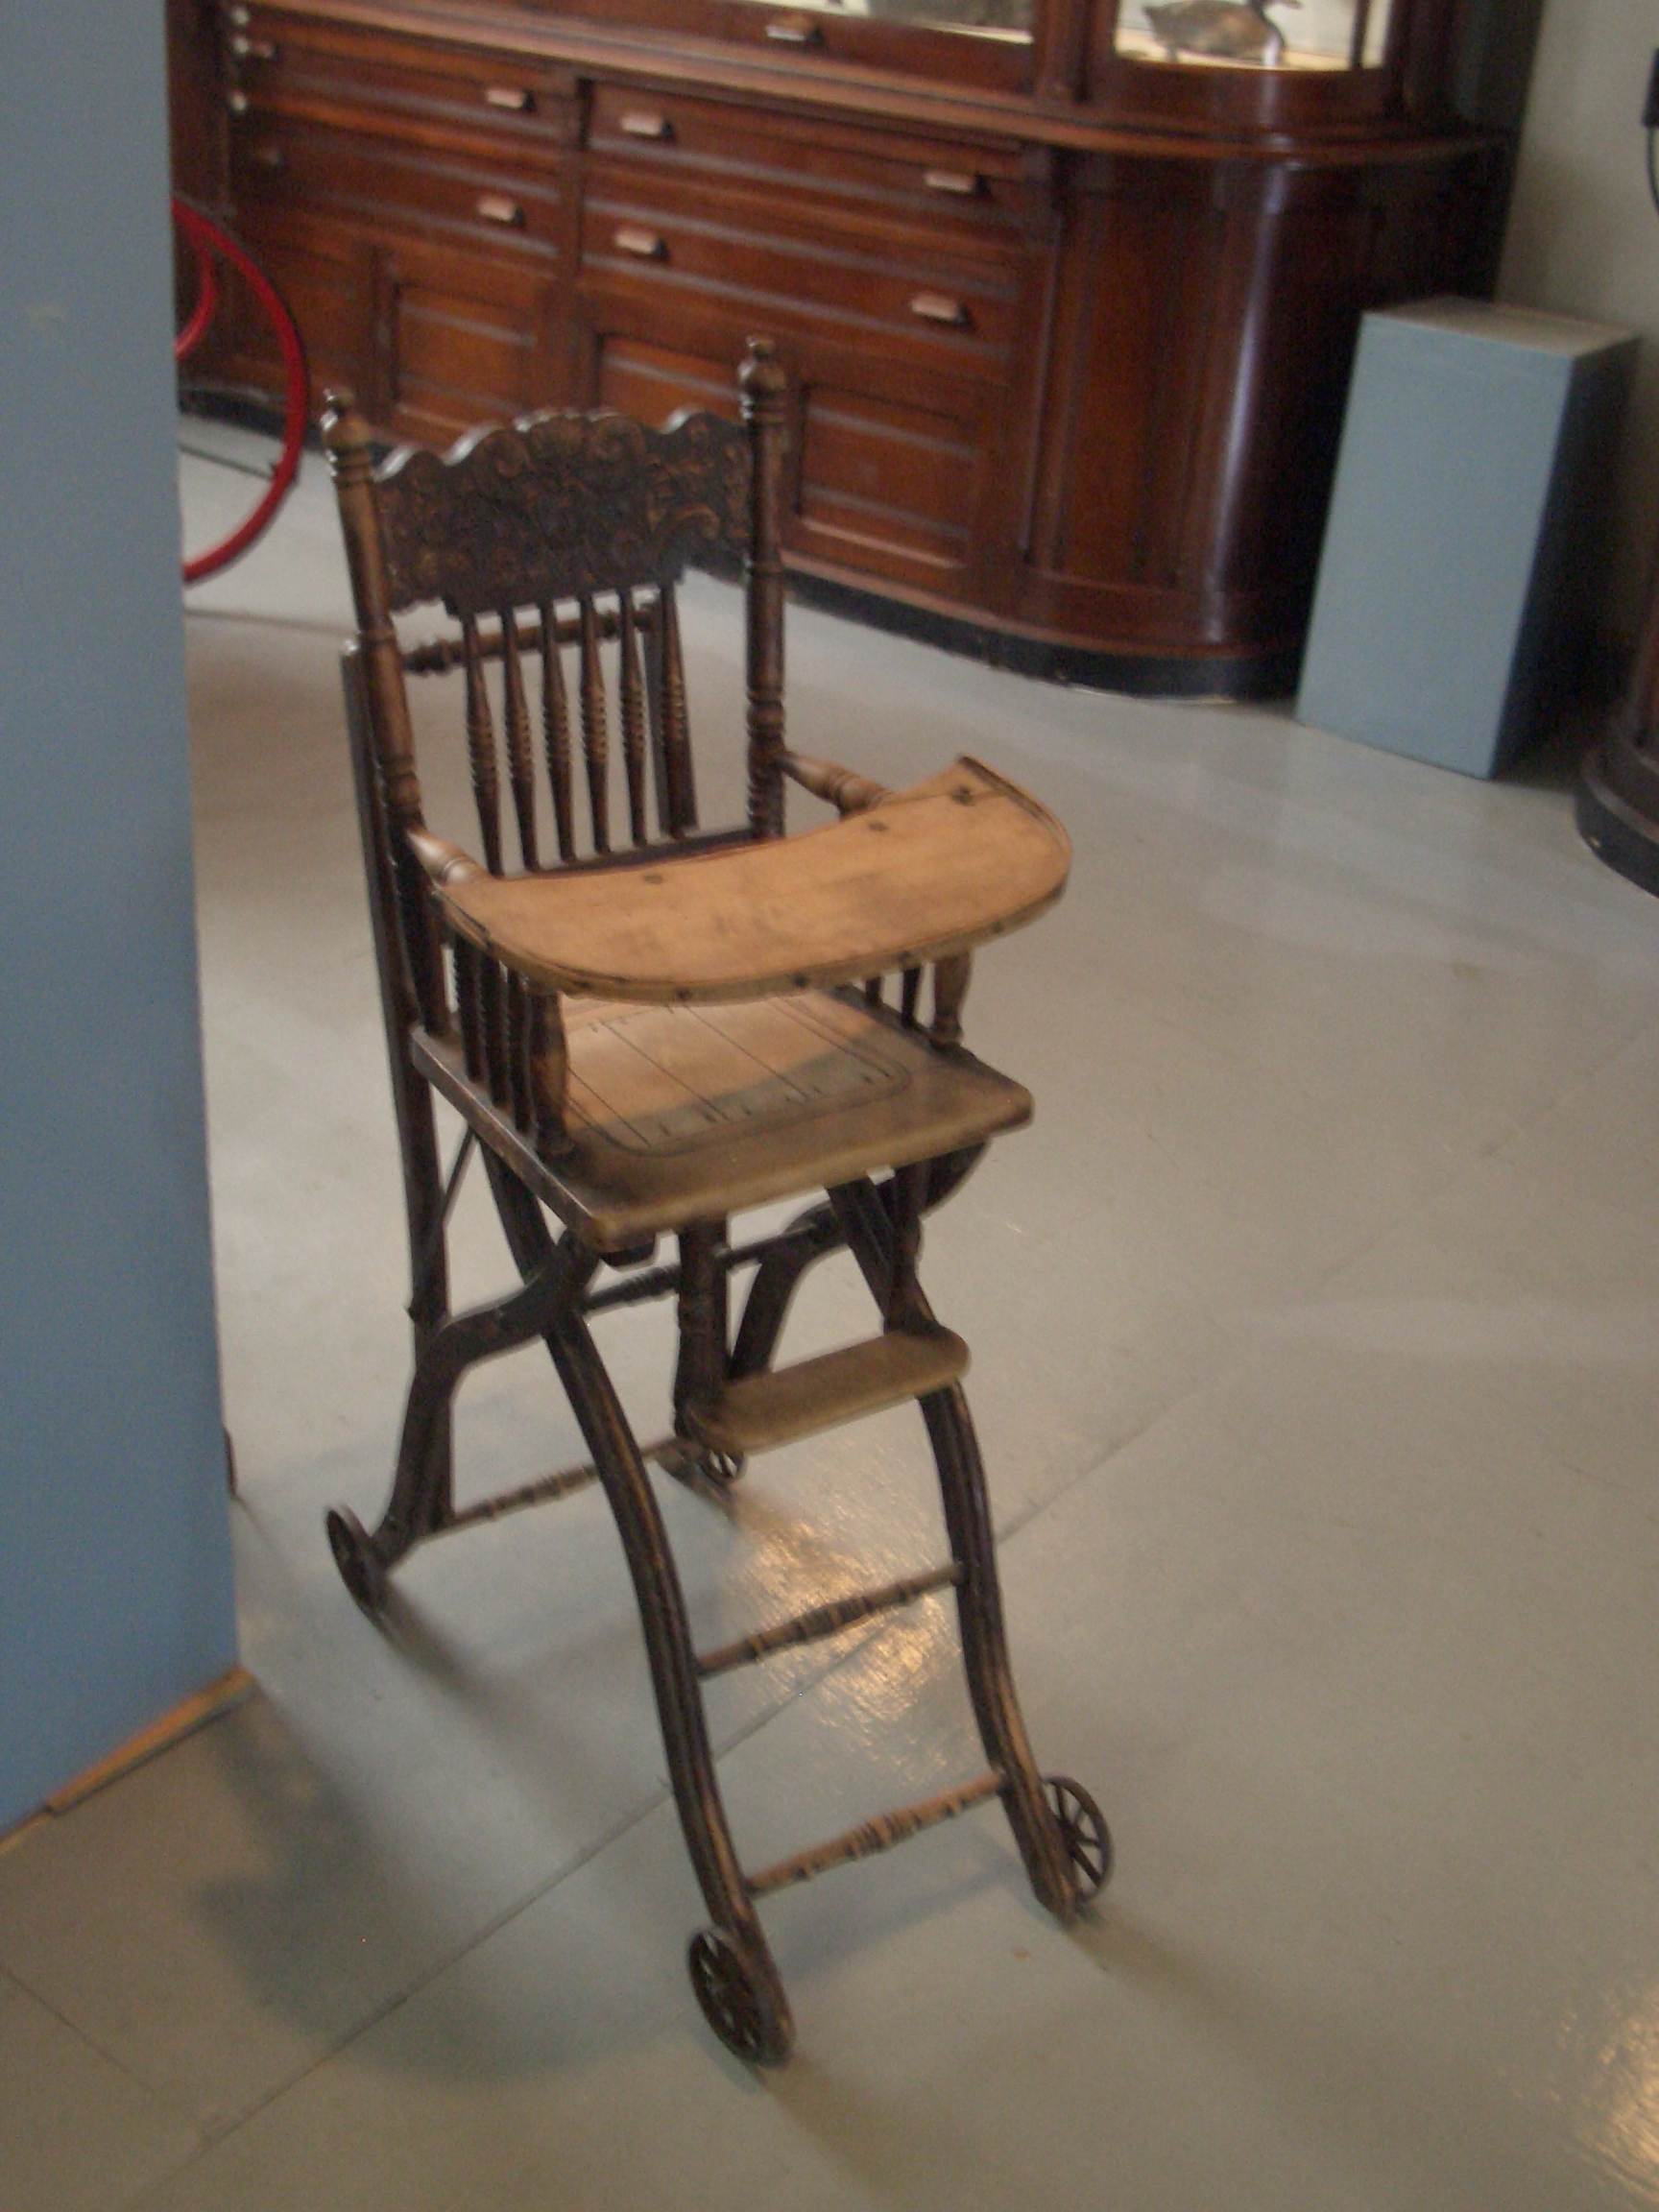 antique high chairs best foldable lawn chair 2 image 1728x2304 pixels 1m jpg free download